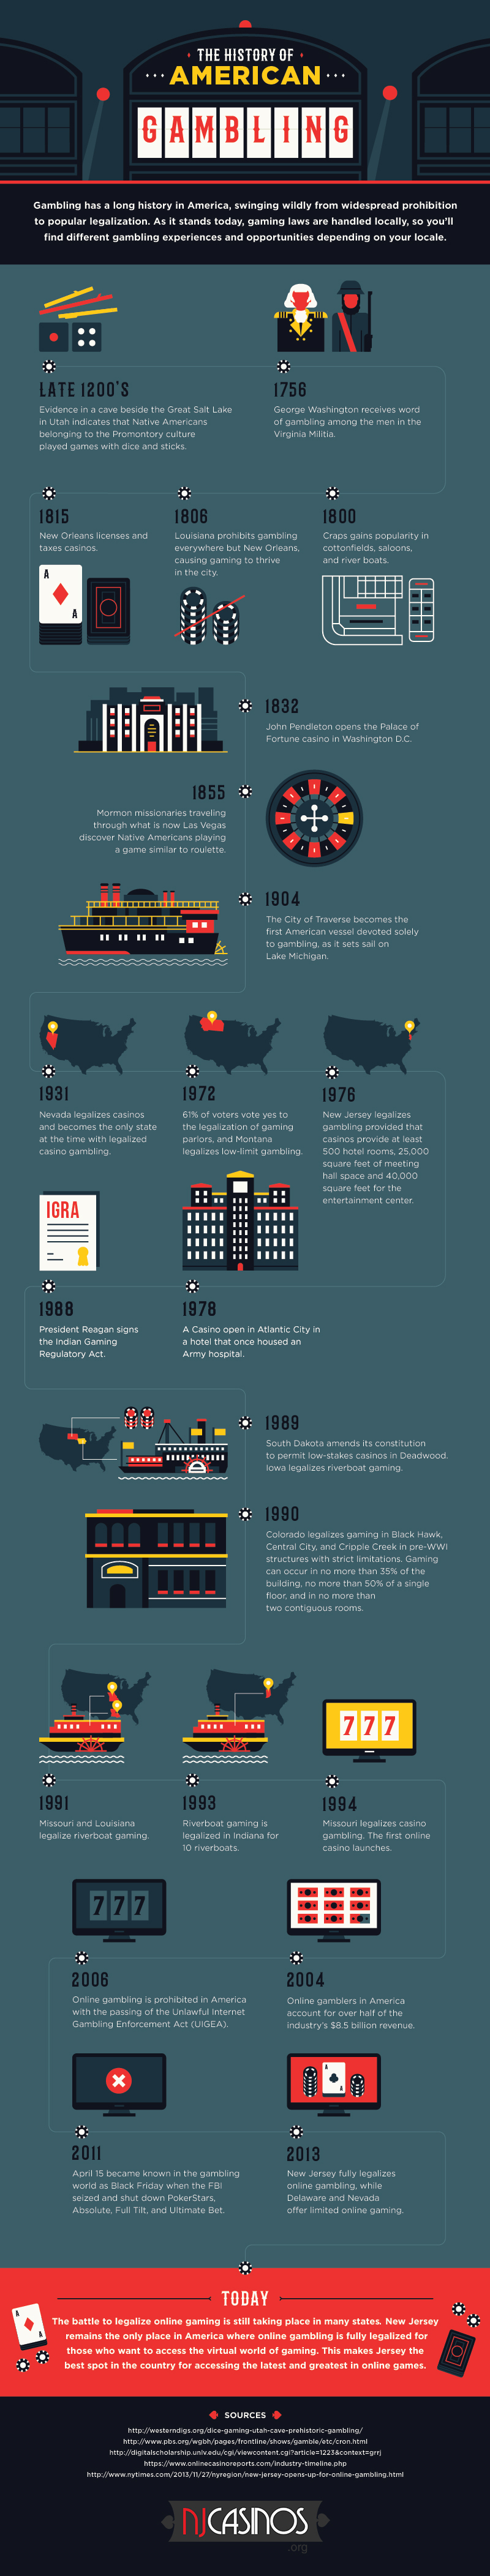 infographic history-1